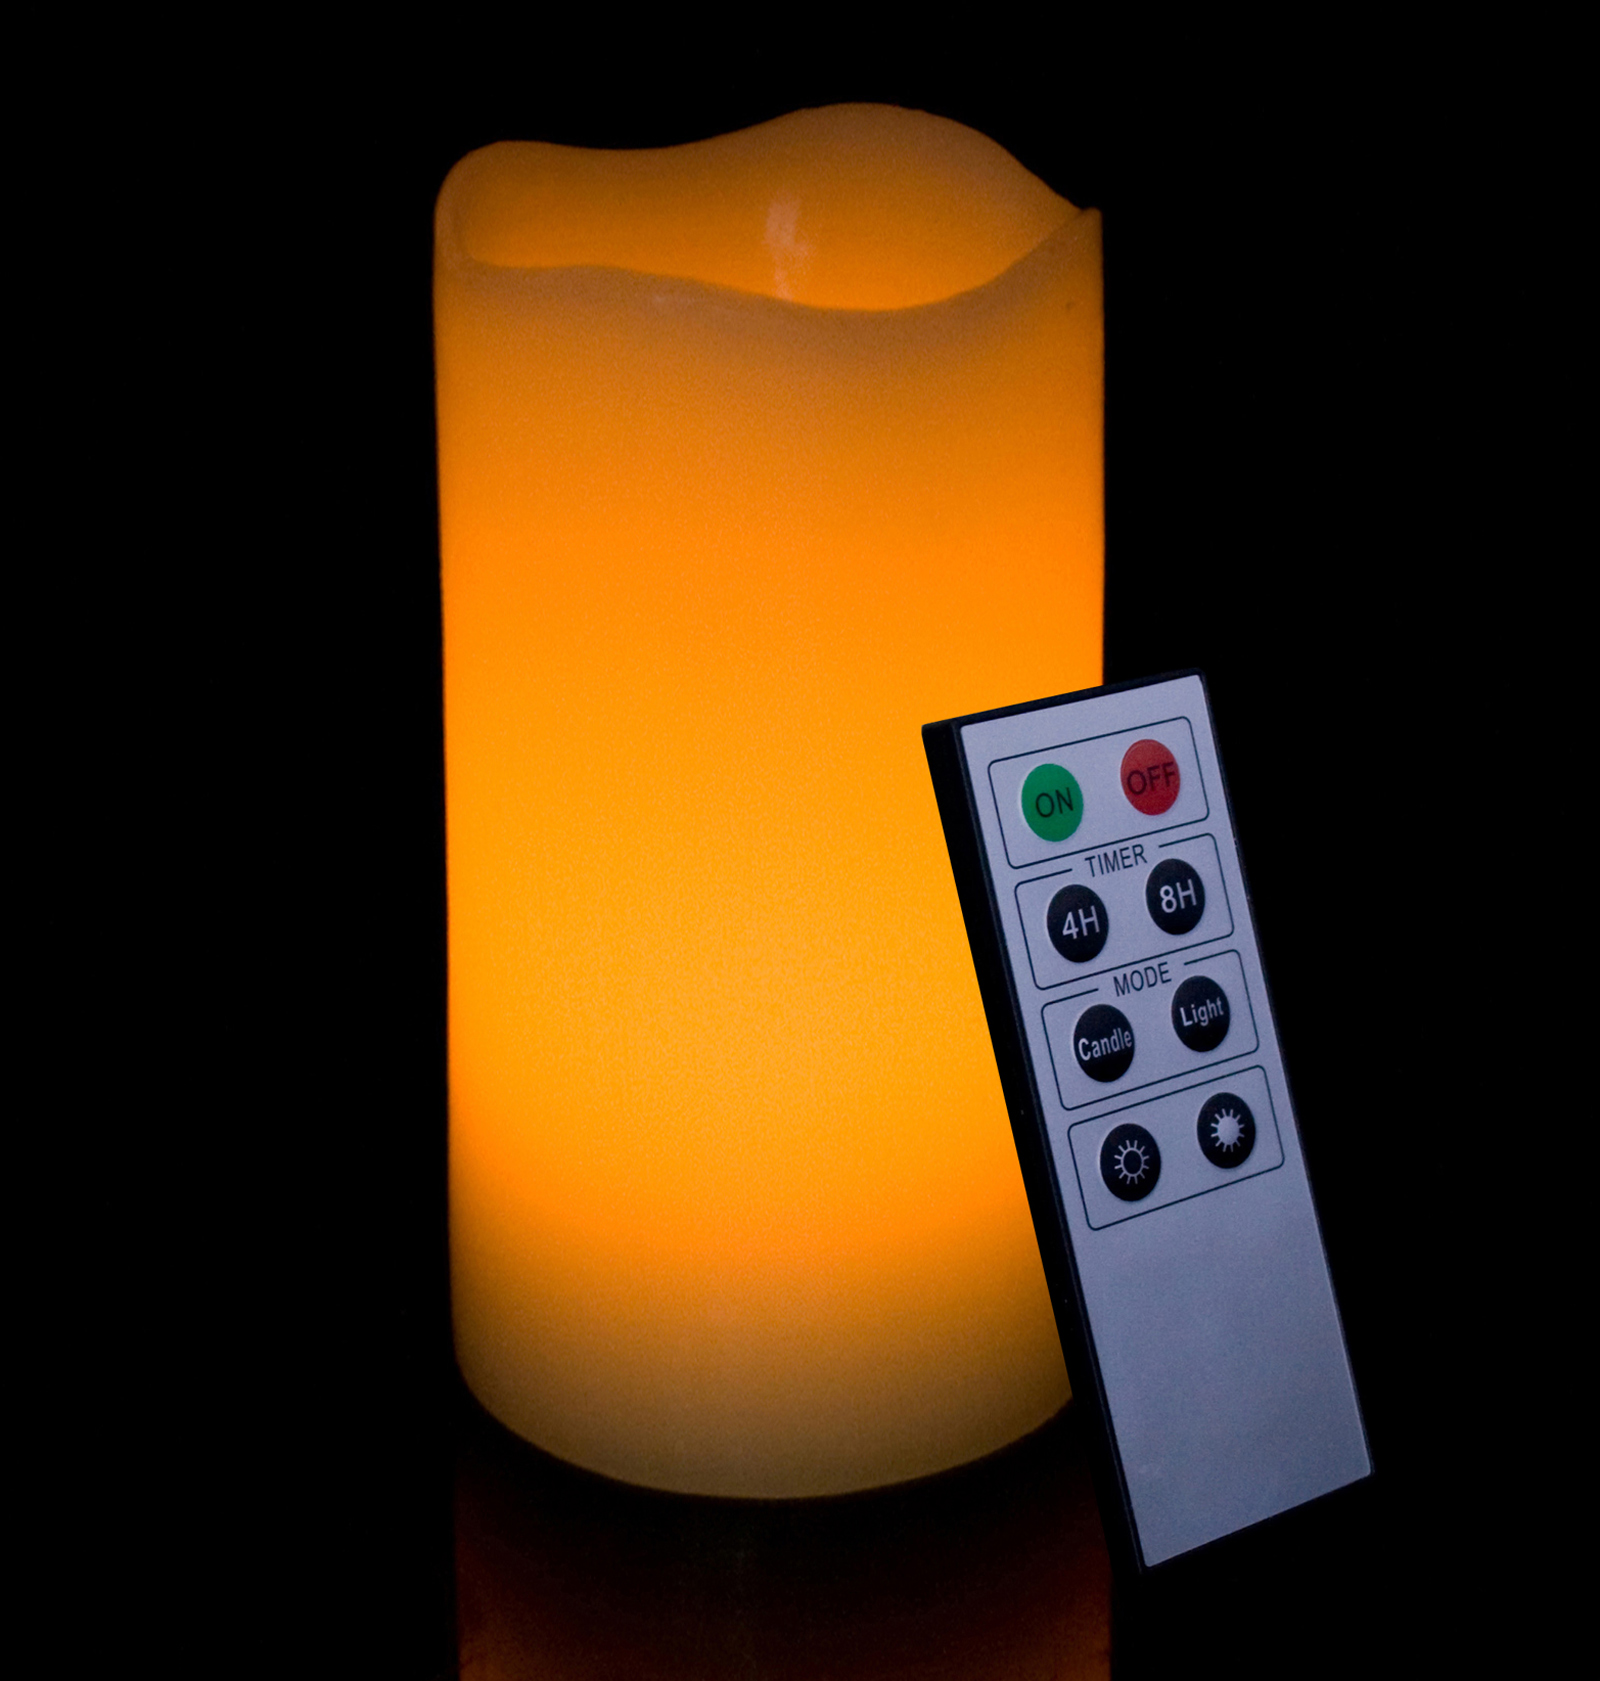 Round Melted Edge Remote Controlled Flameless Wax Pillar Candle - 6 Inch Tall